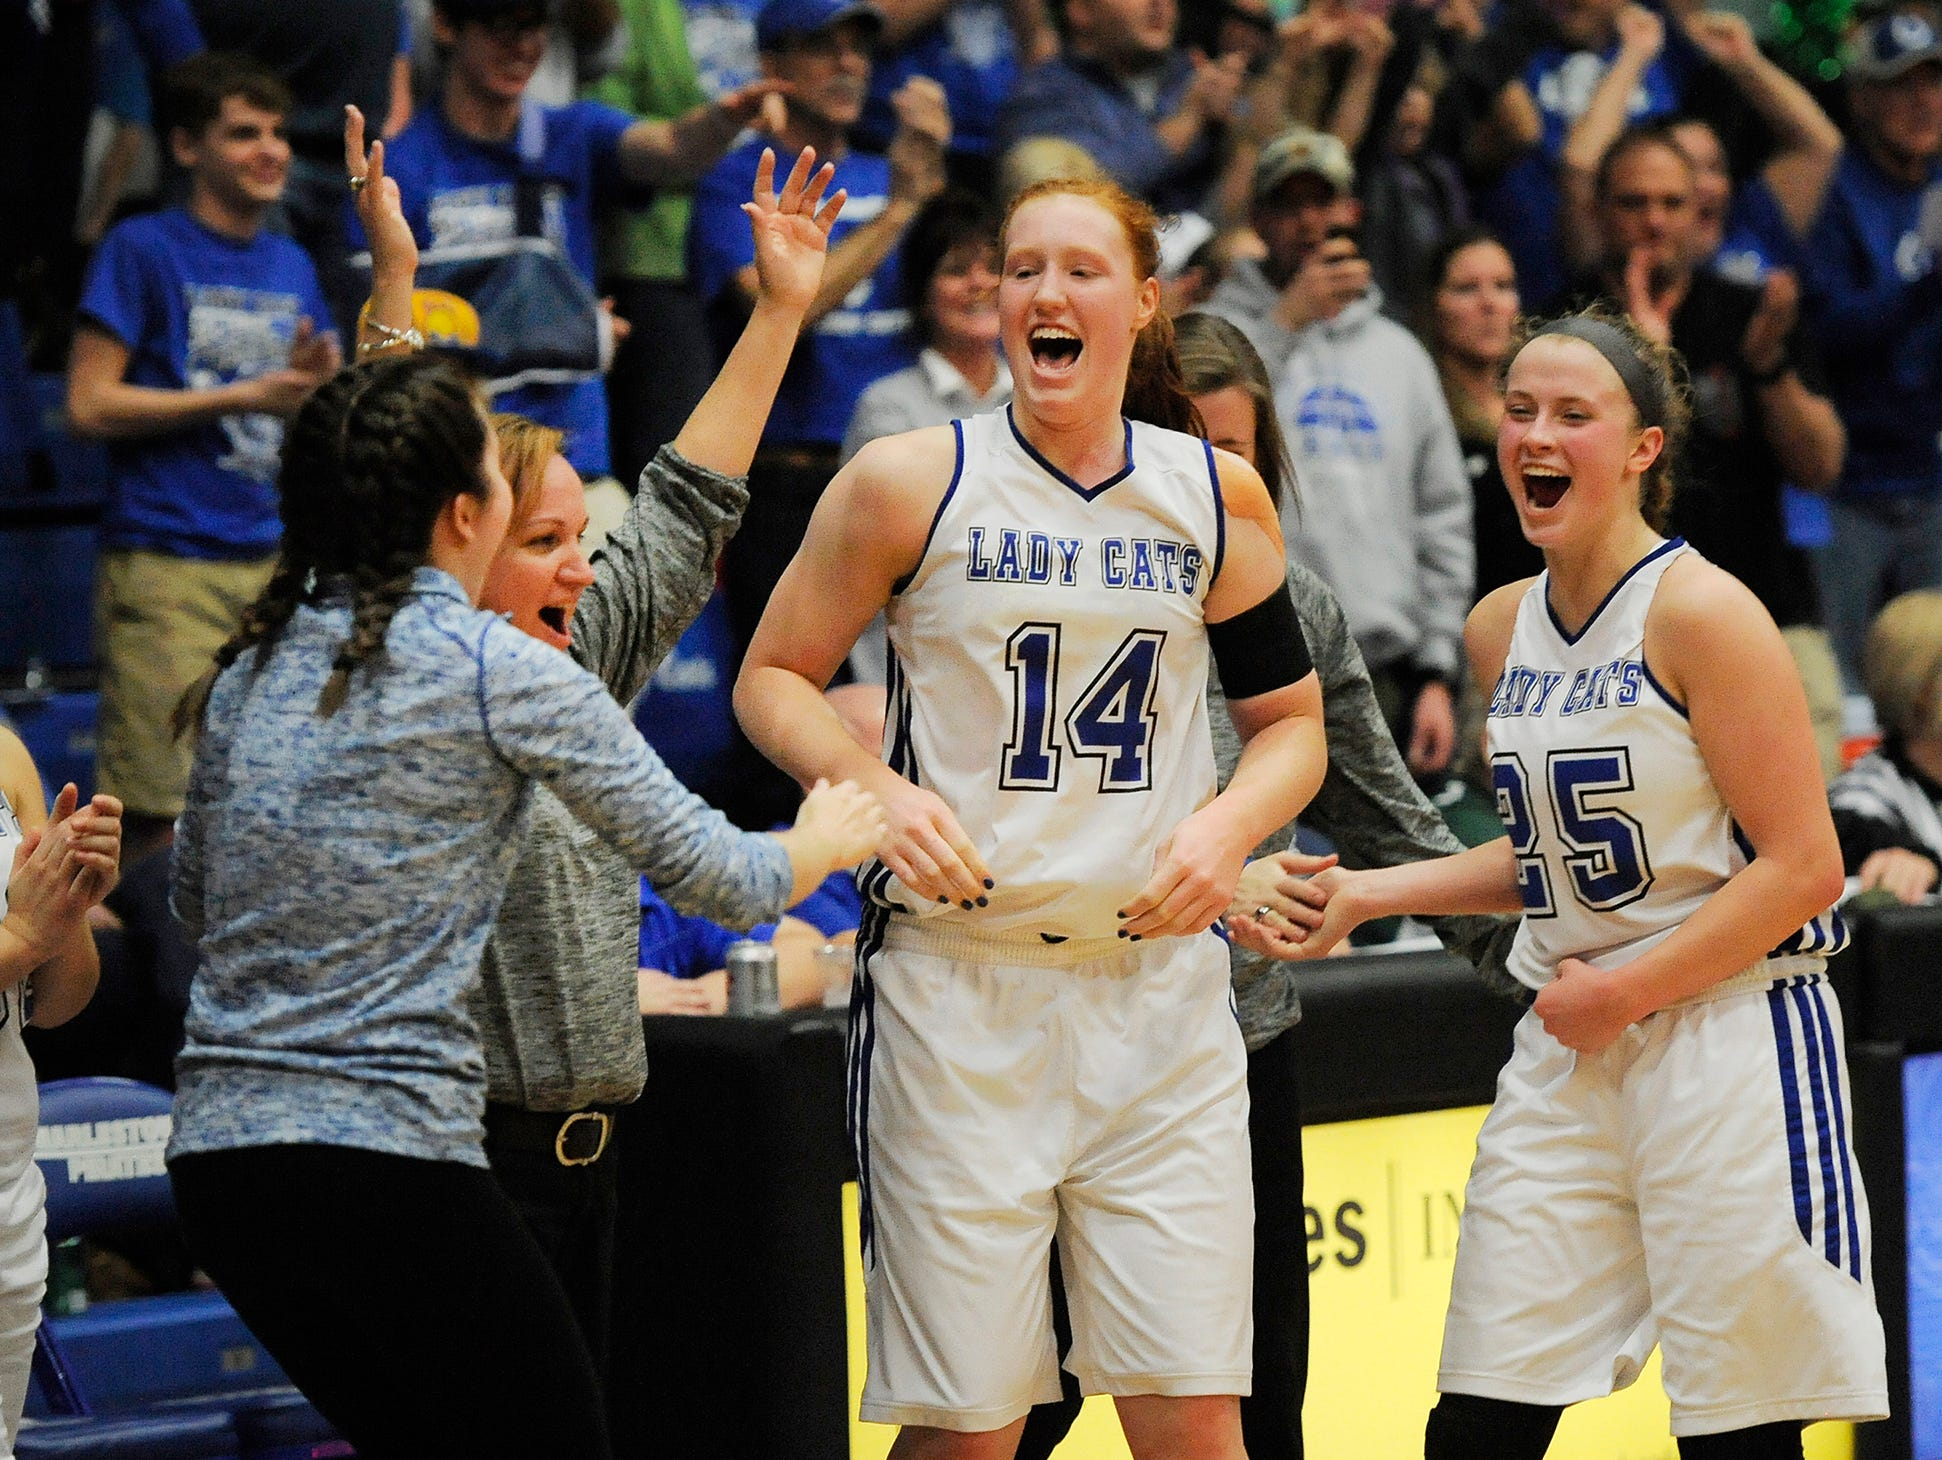 North Harrison head coach Missy Voyles (second from left) celebrates with Lilly Hatton (14) and Cali Nolot (25) after defeating Vincennes-Lincoln 61-48 on Saturday during the 3A Regional Final game at Charlestown High School. (Photo by David Lee Hartlage, Special to The Courier-Journal) Feb. 11, 2017